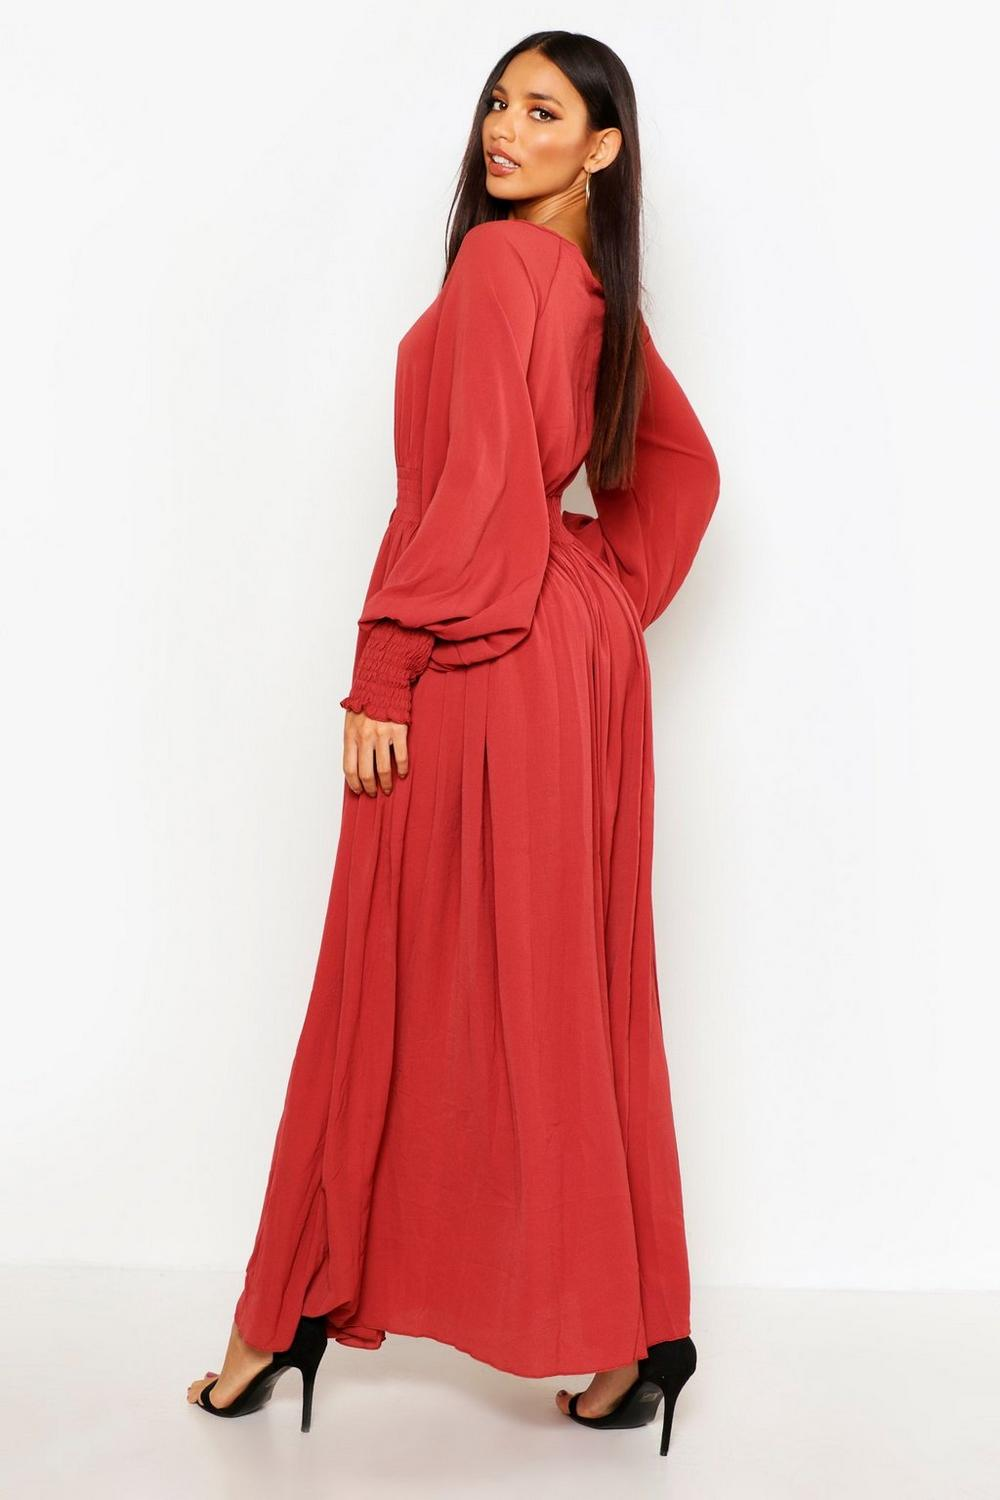 Boohoo Shirred Waist & Cuff Woven Maxi Dress Outlet Store Cheap Price dQUM3VVBOB